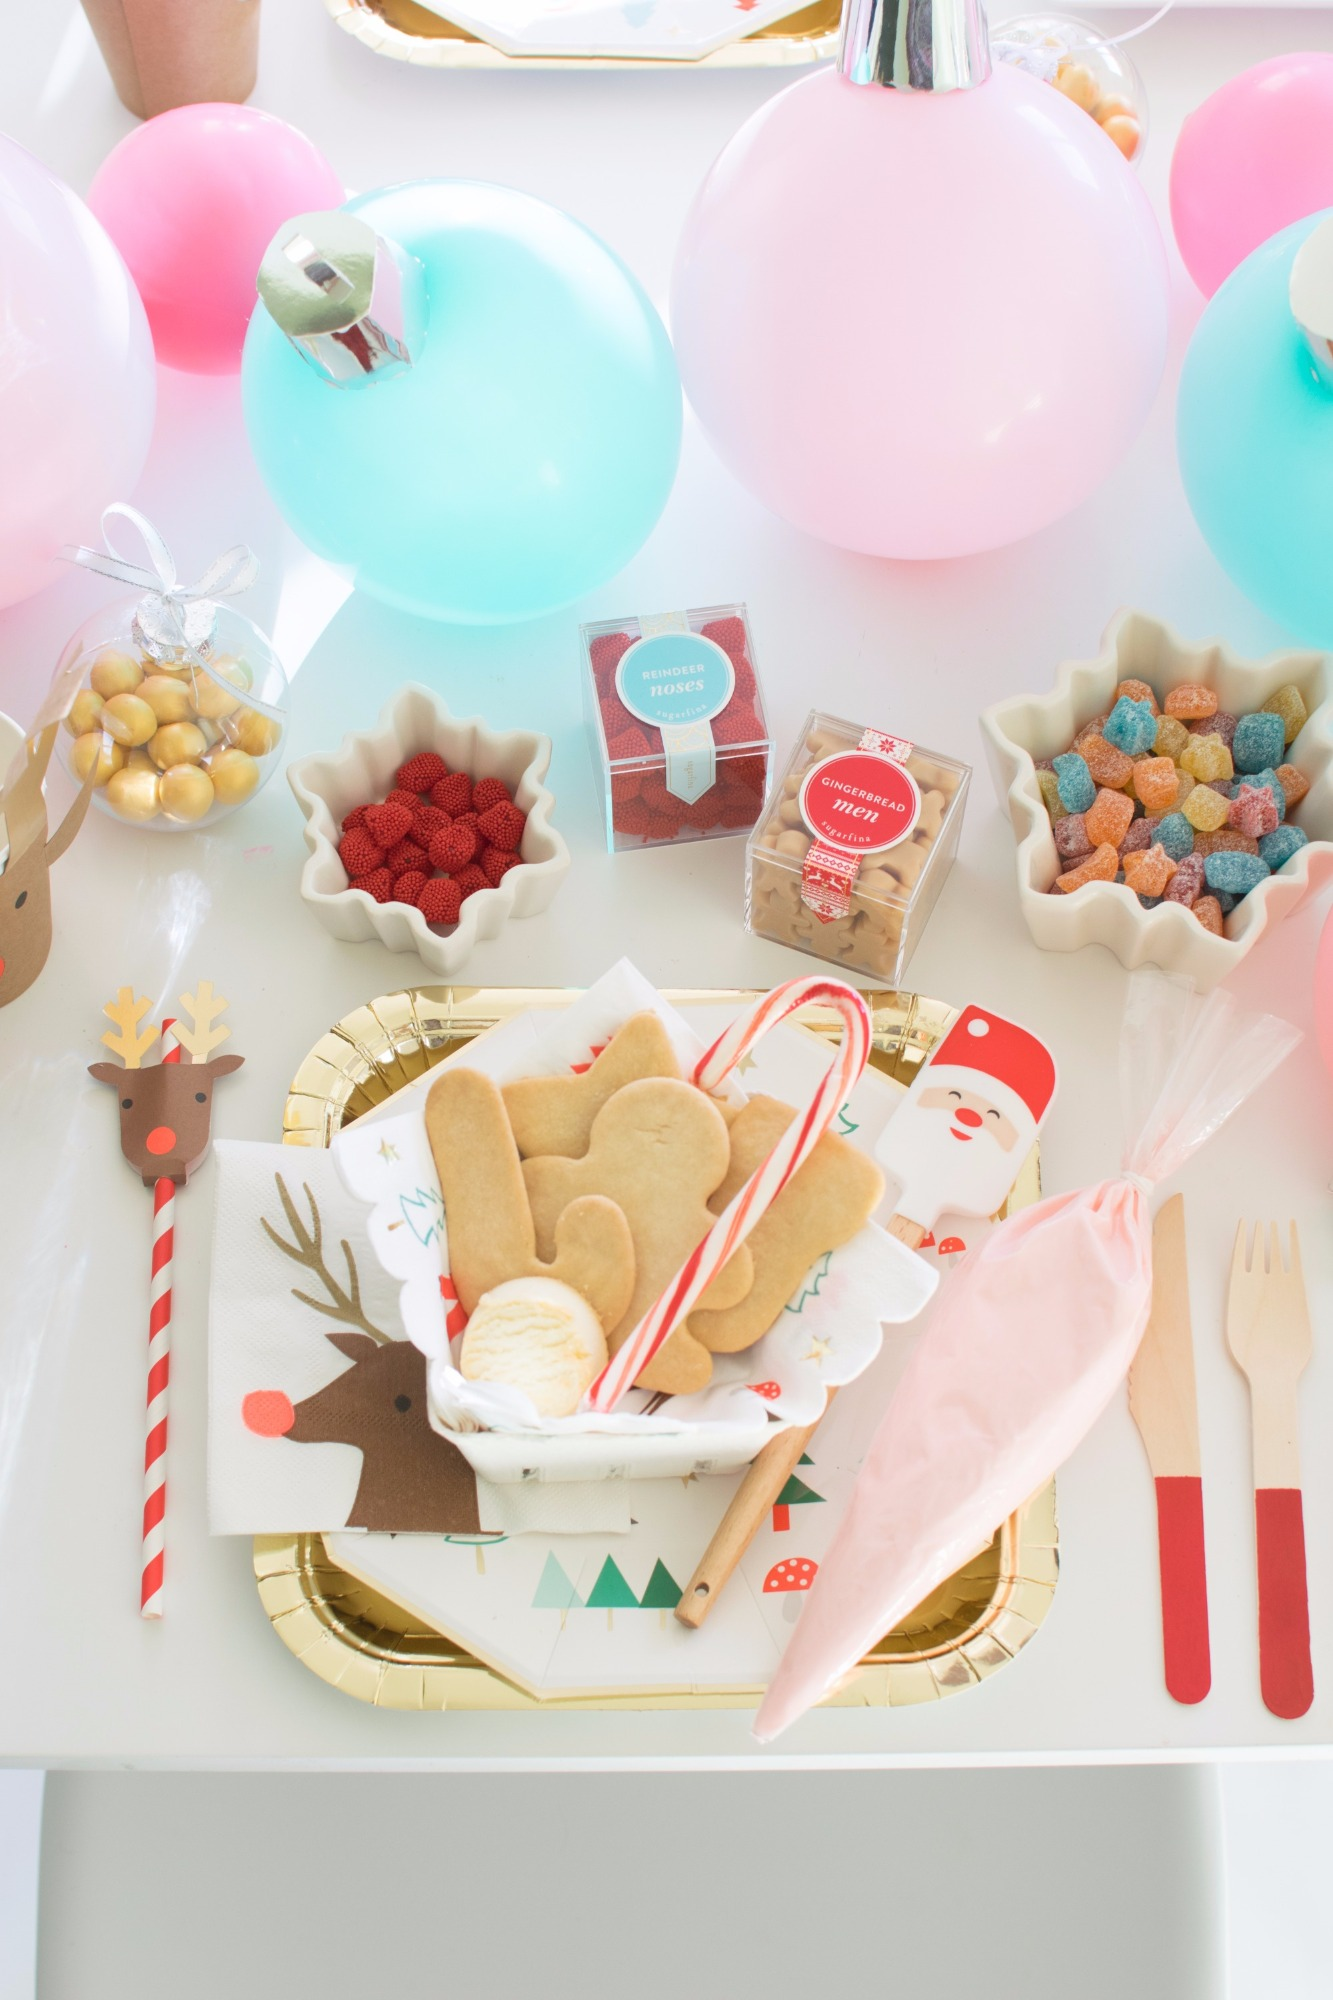 Cookies and Candy from Holiday Cookie Decorating Party by Twinkle Twinkle Little Party | Black Twine